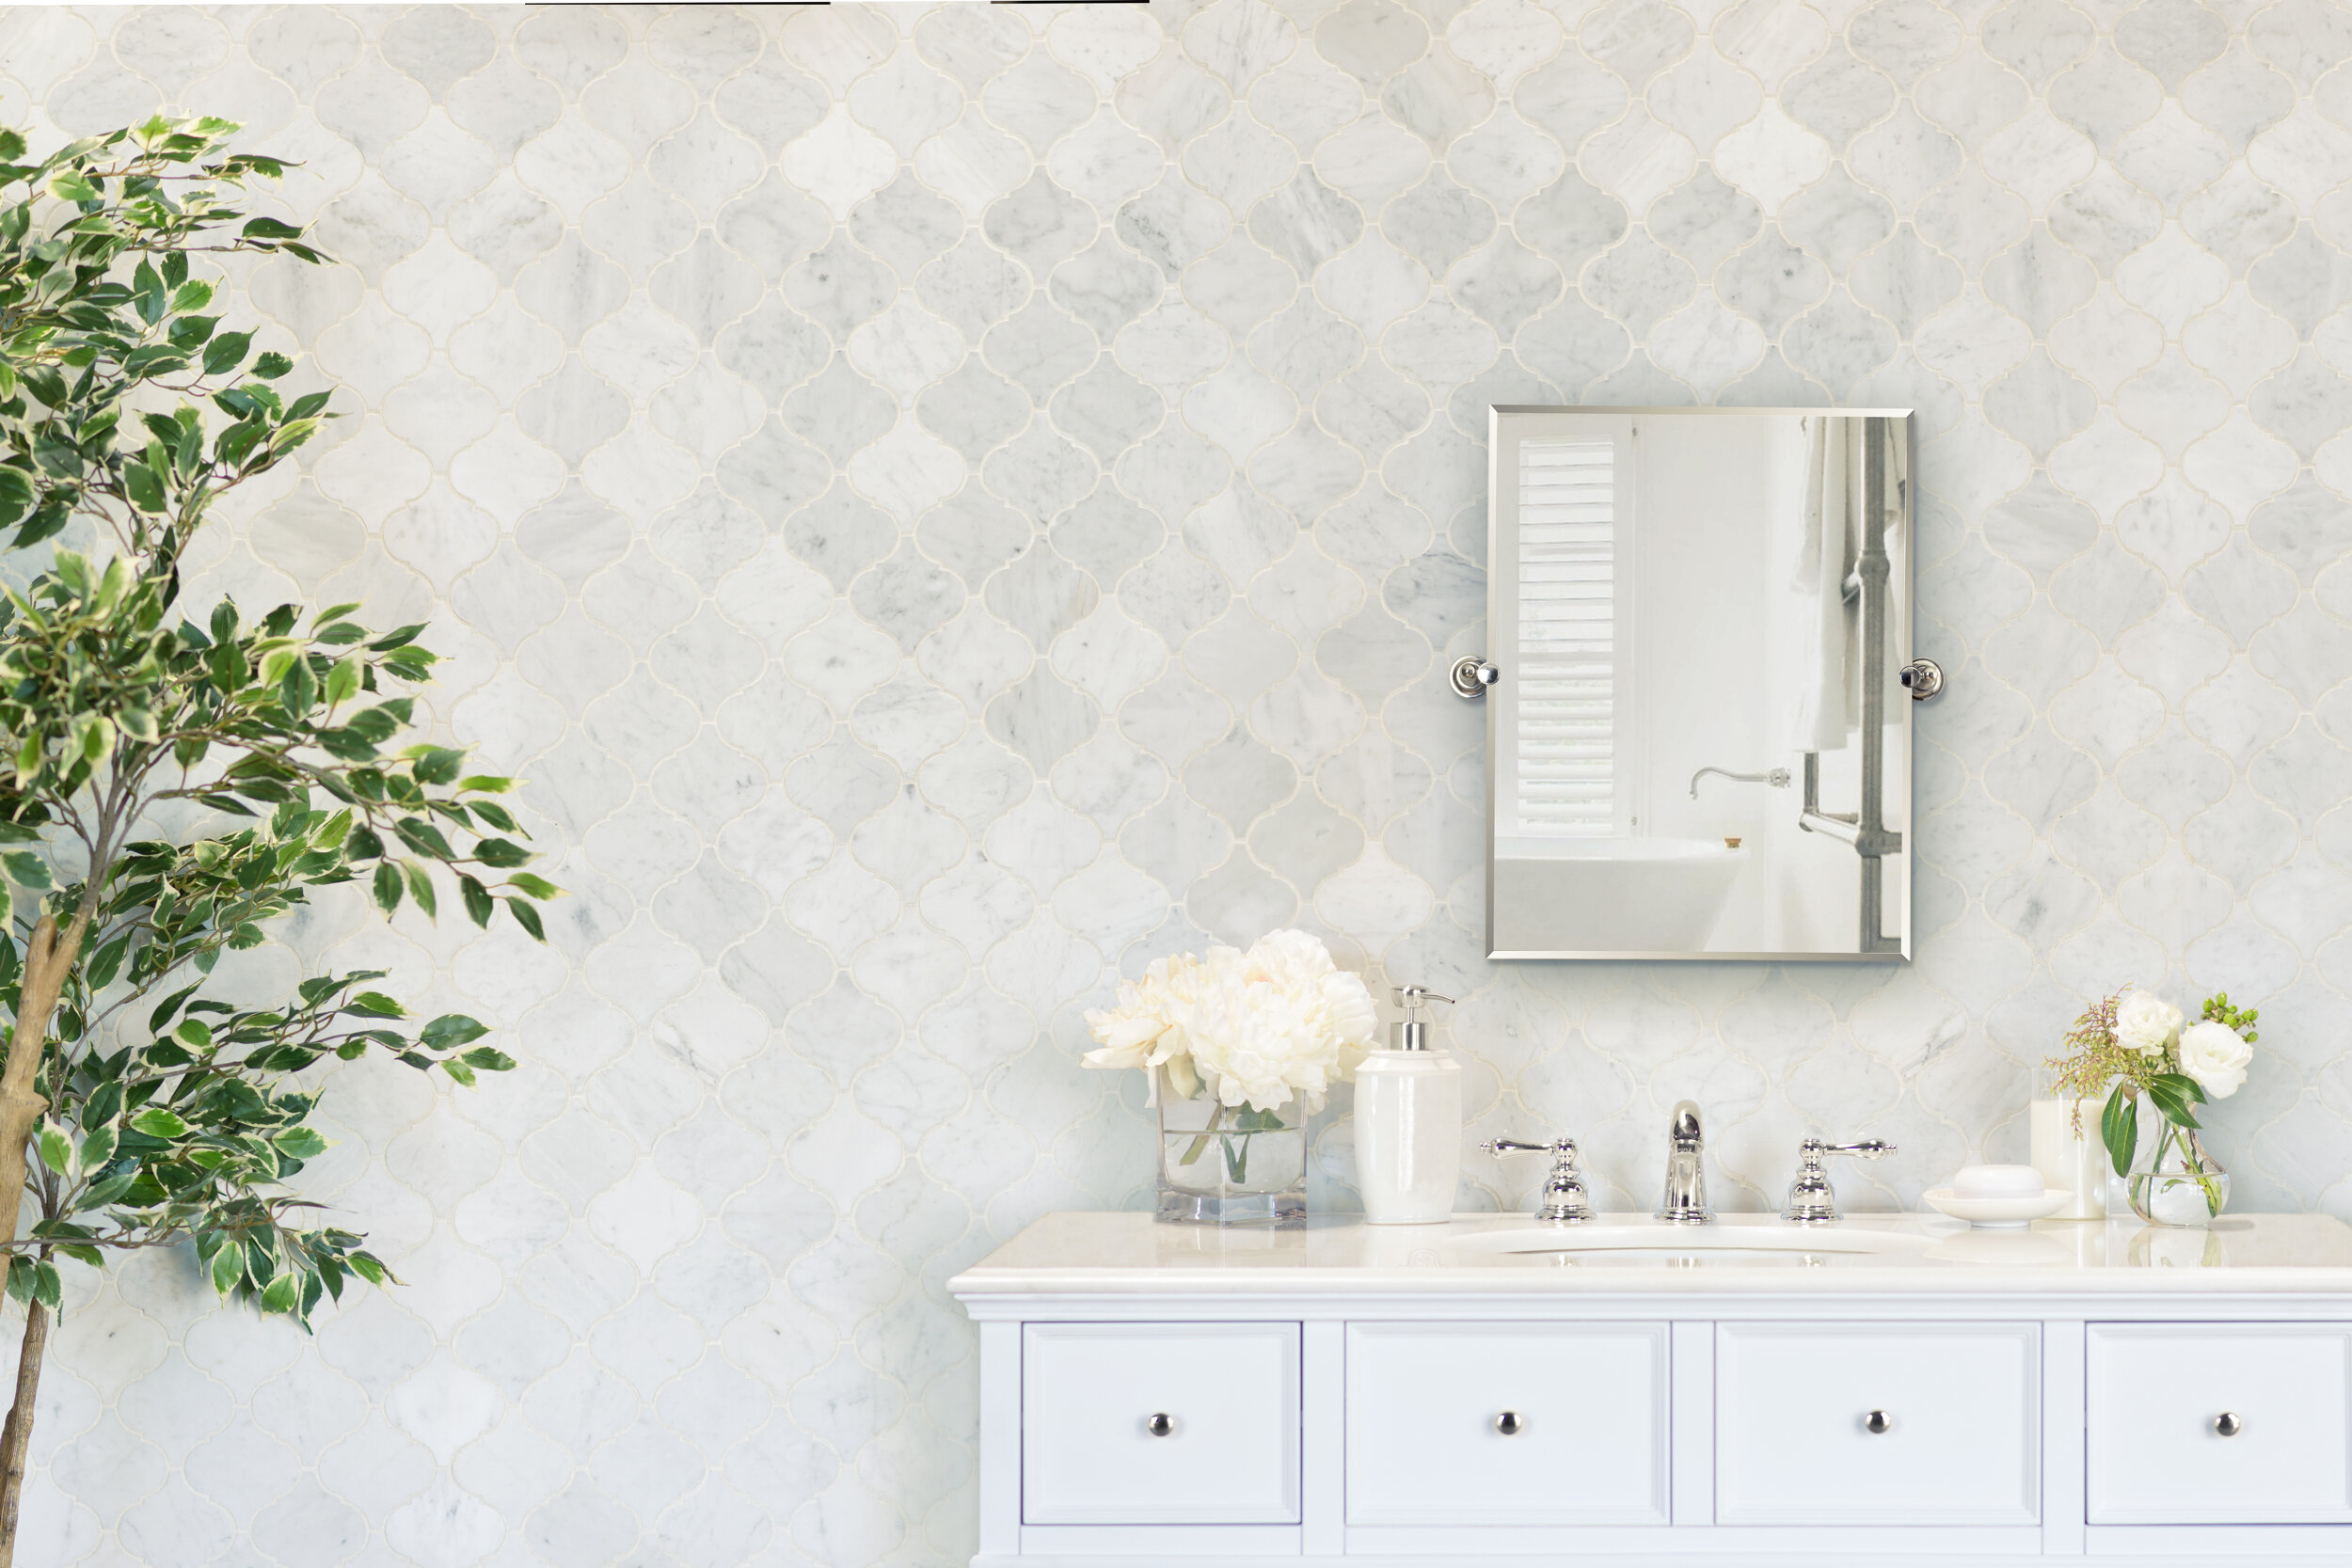 Polished 3 X 4 Marble Mosaic Tile In White Carrara within dimensions 2500 X 1667